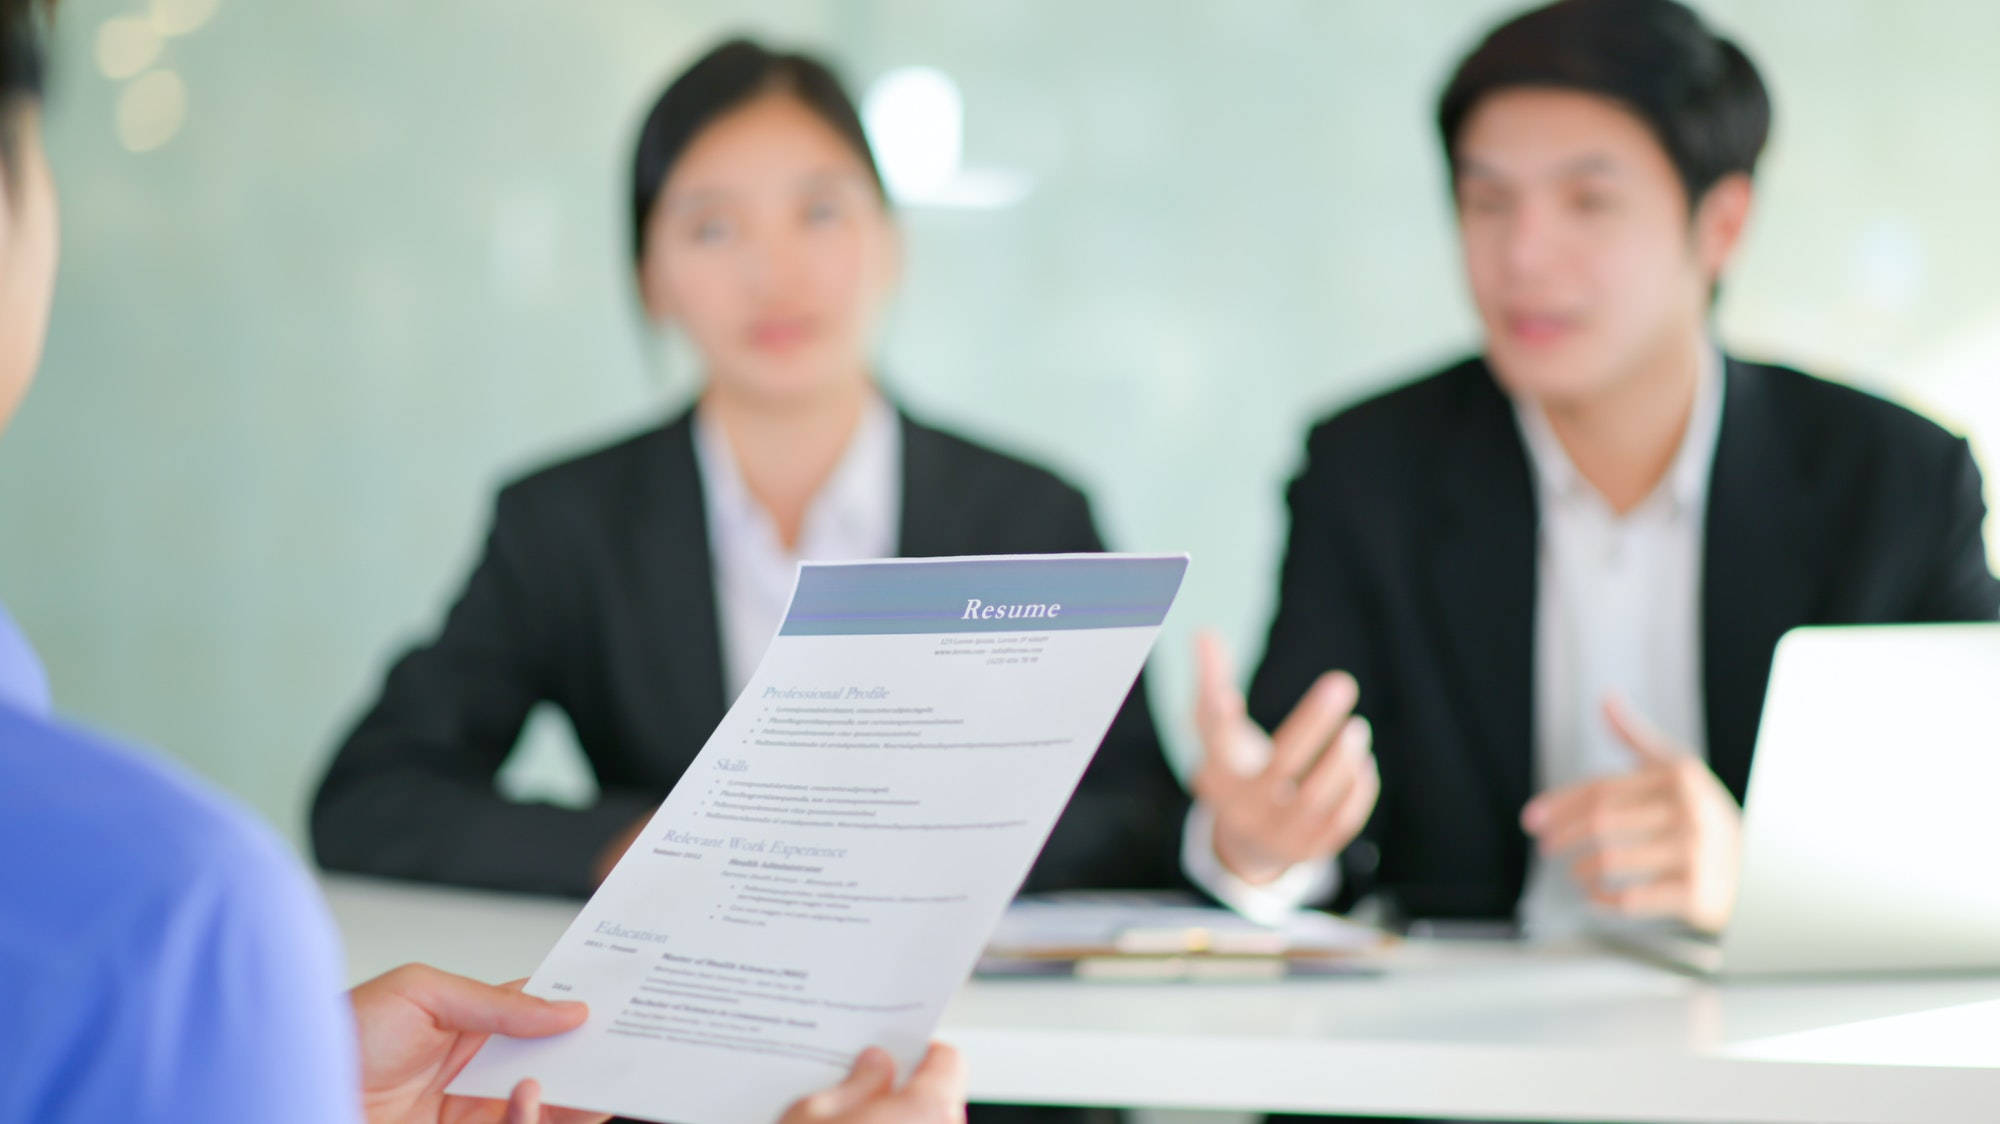 Interviewing job seekers presenting their resume with current resume trends